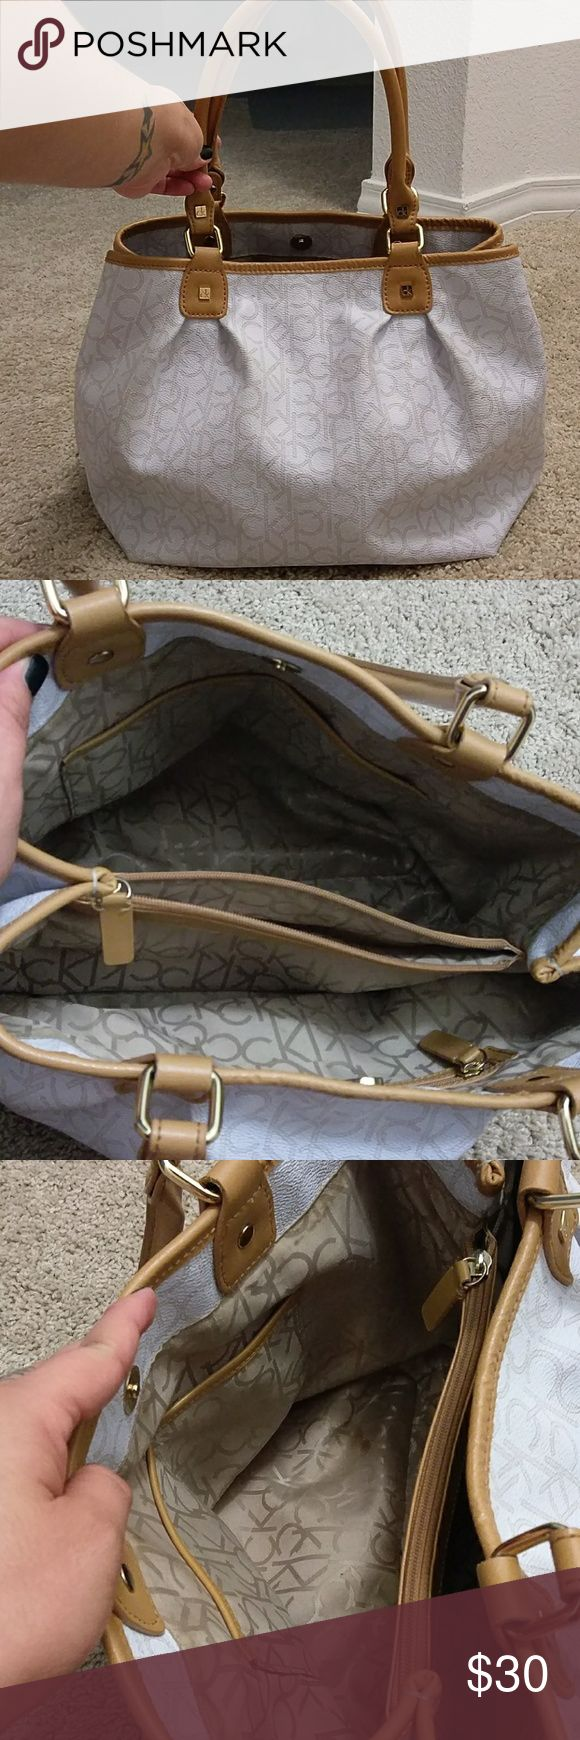 Calvin Klein bag Used, a couple of marks on the bottom from normal wear. Dims are 15X6X11. Handles are 8 inches long. One middle zipper compartment, one side zipper pocket and two individual opposite side pockets. Calvin Klein Bags Shoulder Bags